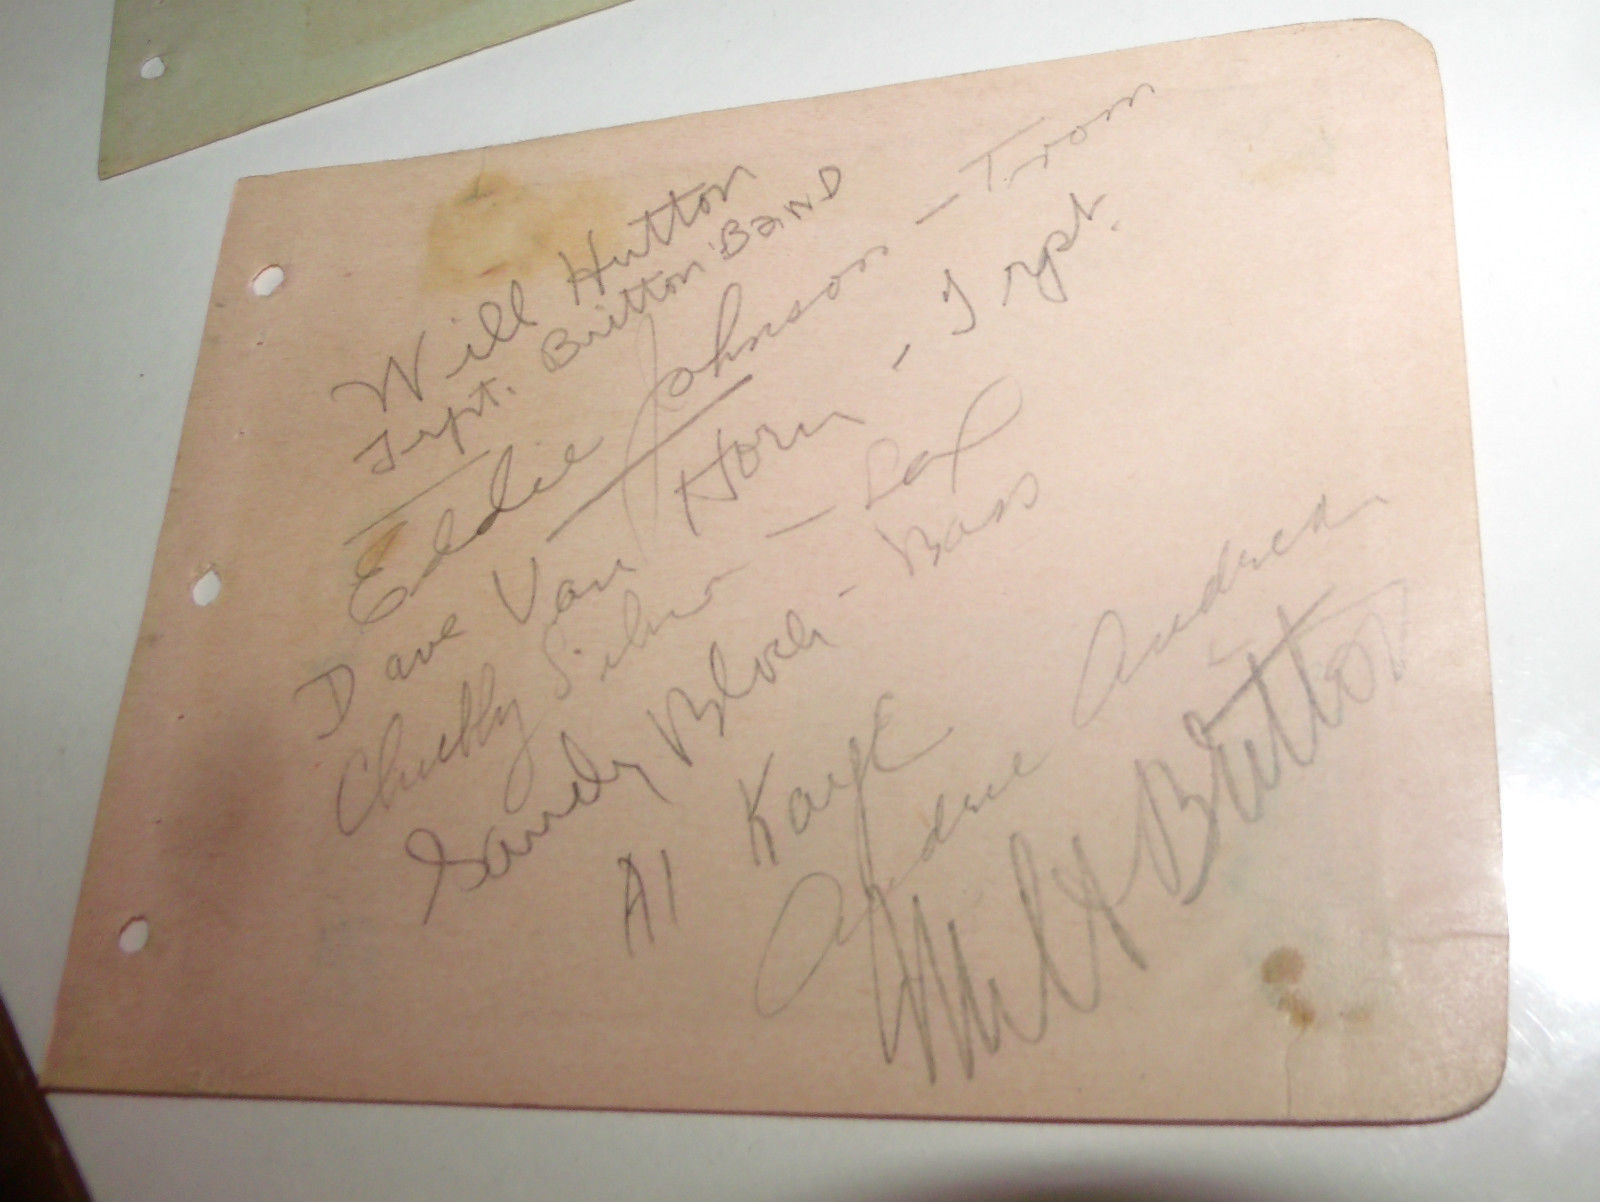 MILT BRITTON BAND HAND SIGNED 8X AUTOGRAPH BOOK PAGE